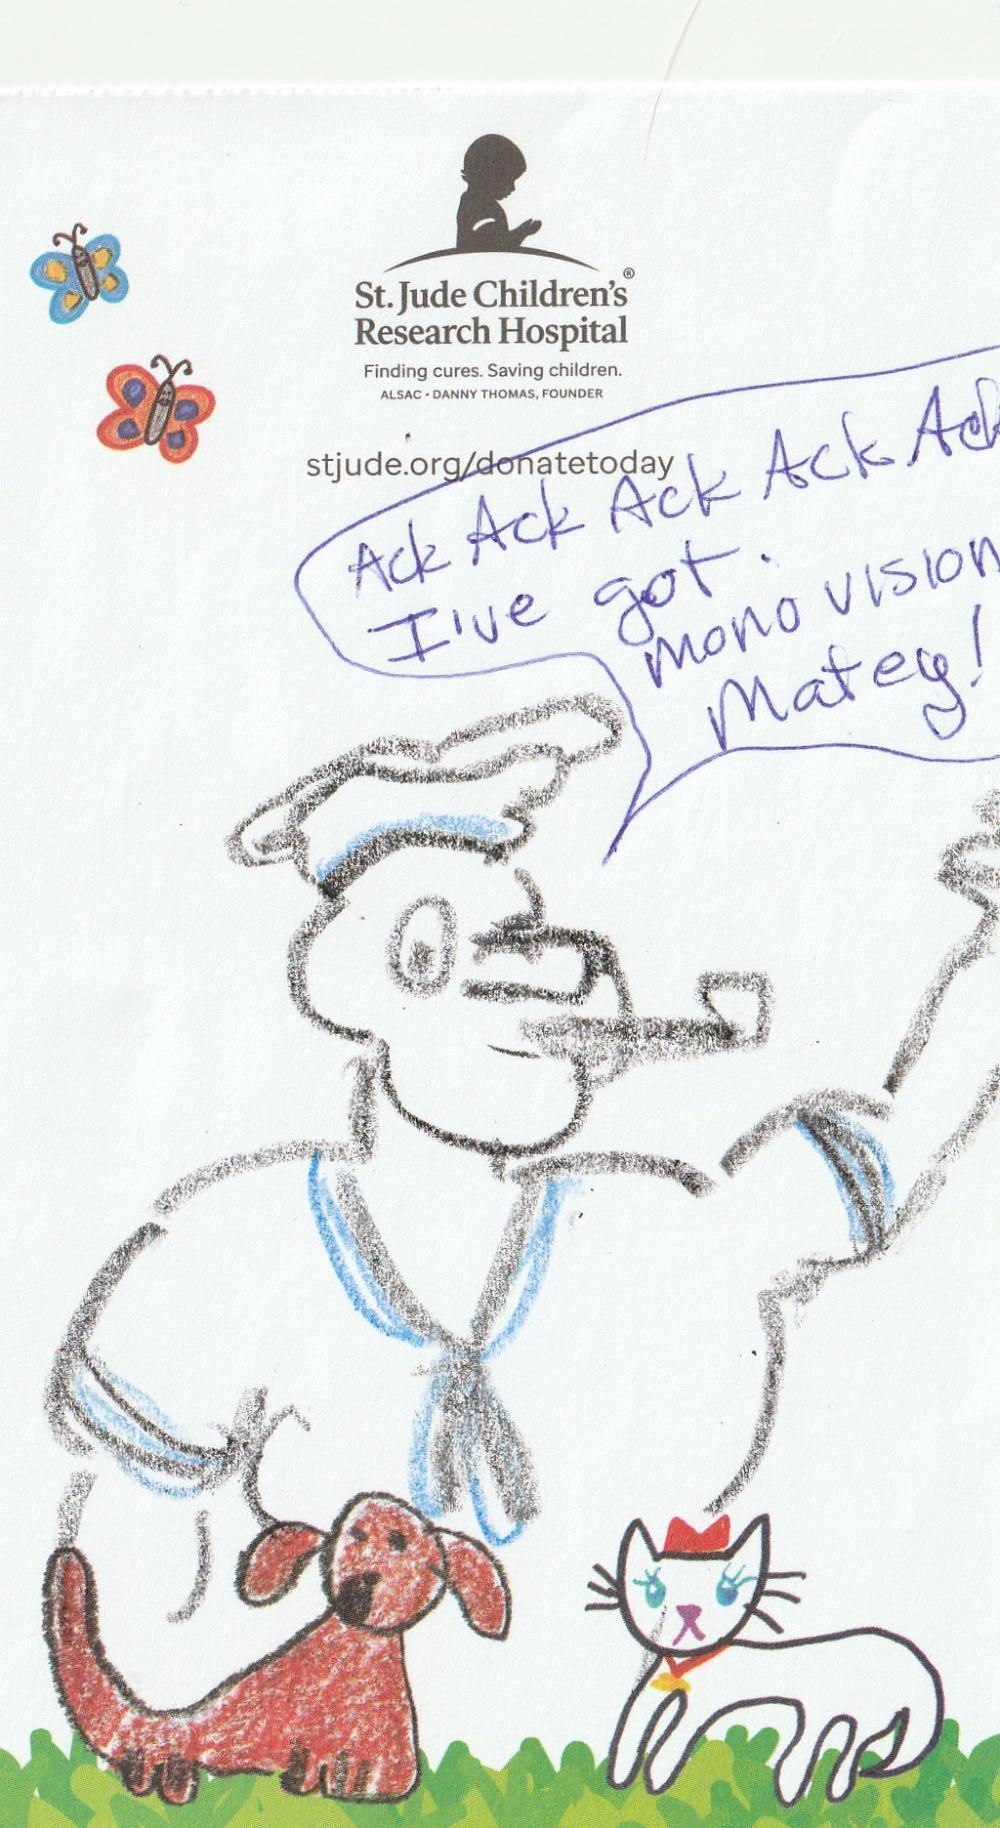 And a poor attempt at Popeye from me. My husband is an optometrist, so mentioning momovision is hilarious.....to us. Only us. Ack ack ack ack ack!